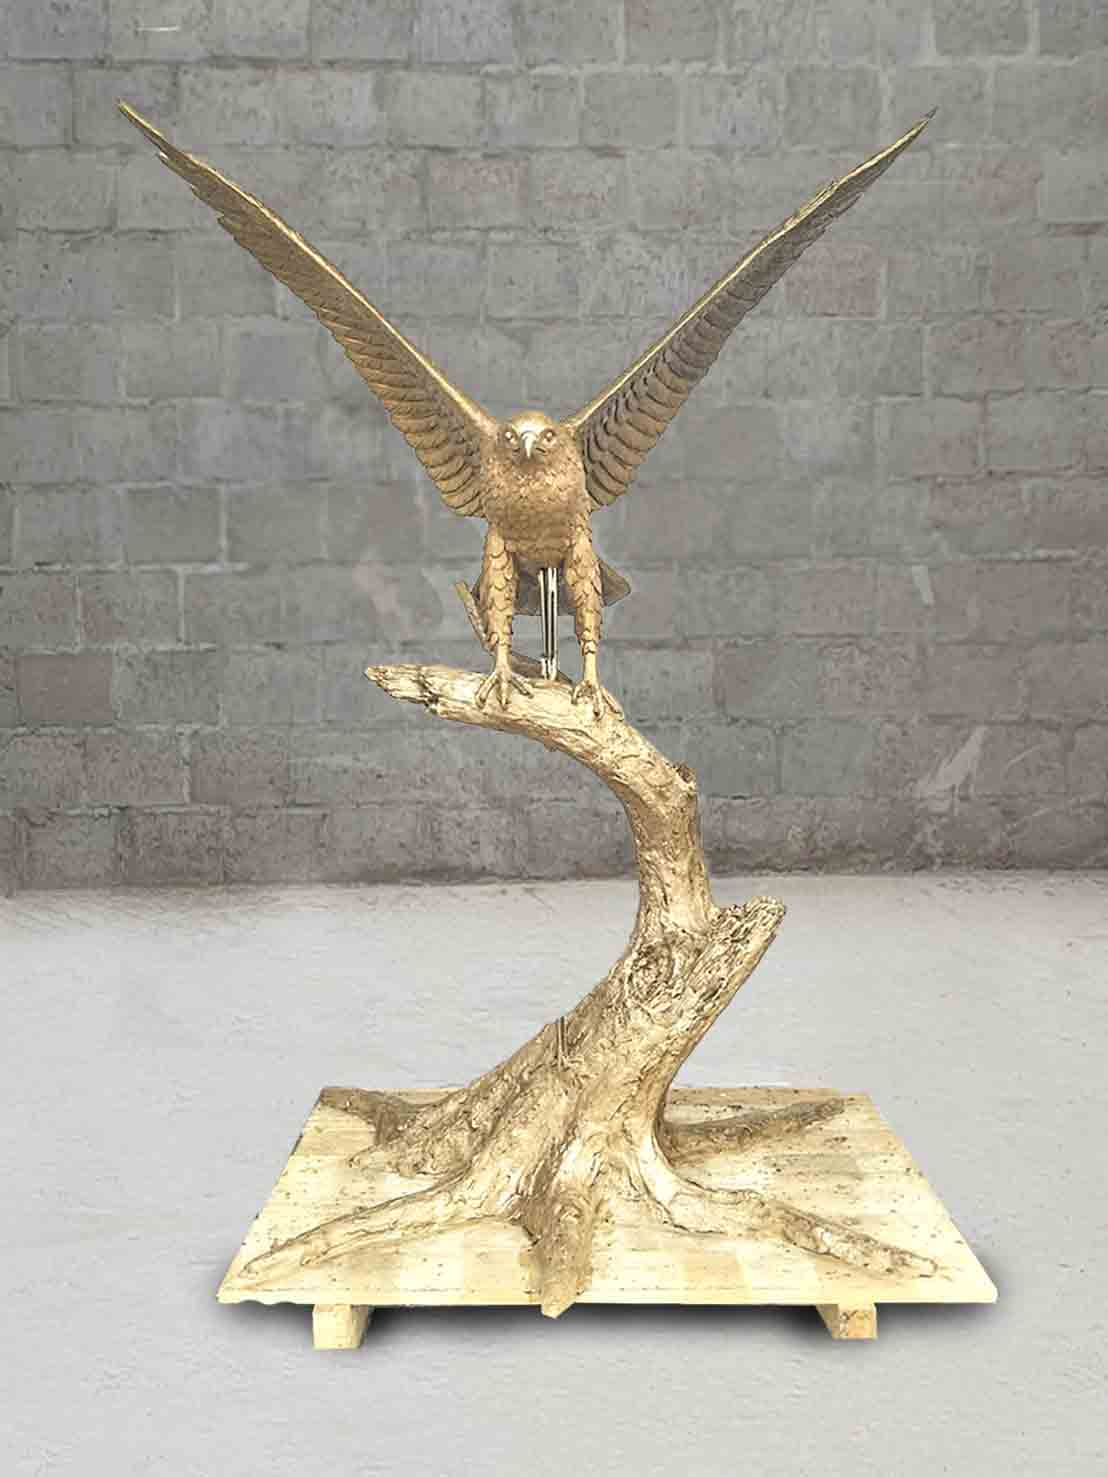 Cast Mold of a red hawk with wings spread out and standing on a tree